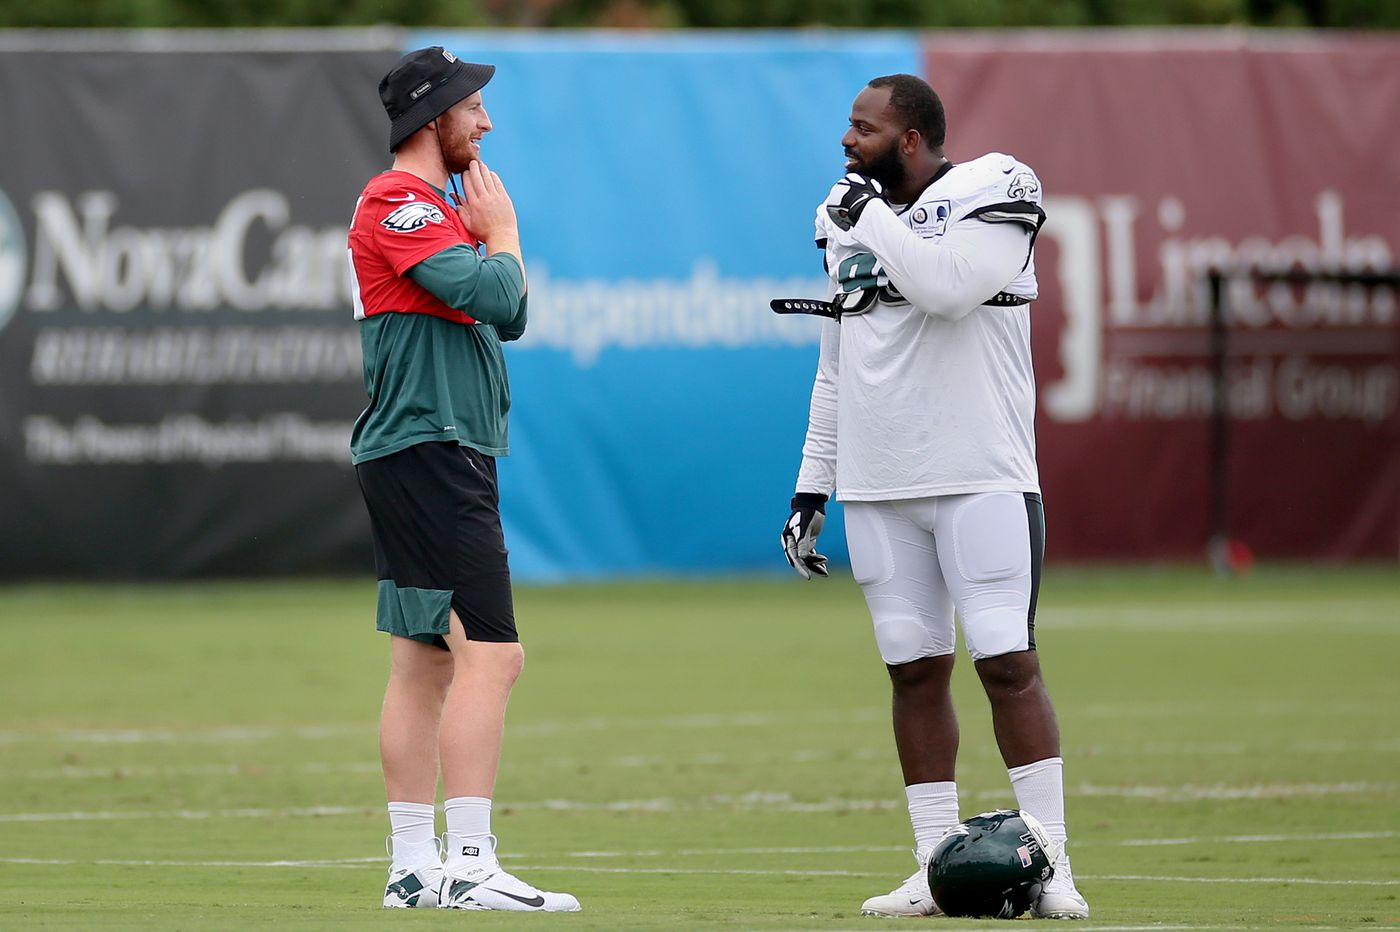 Eagles are cautious with Carson Wentz injury, and Doug Pederson says QB 'will be ready to go' Sept. 13